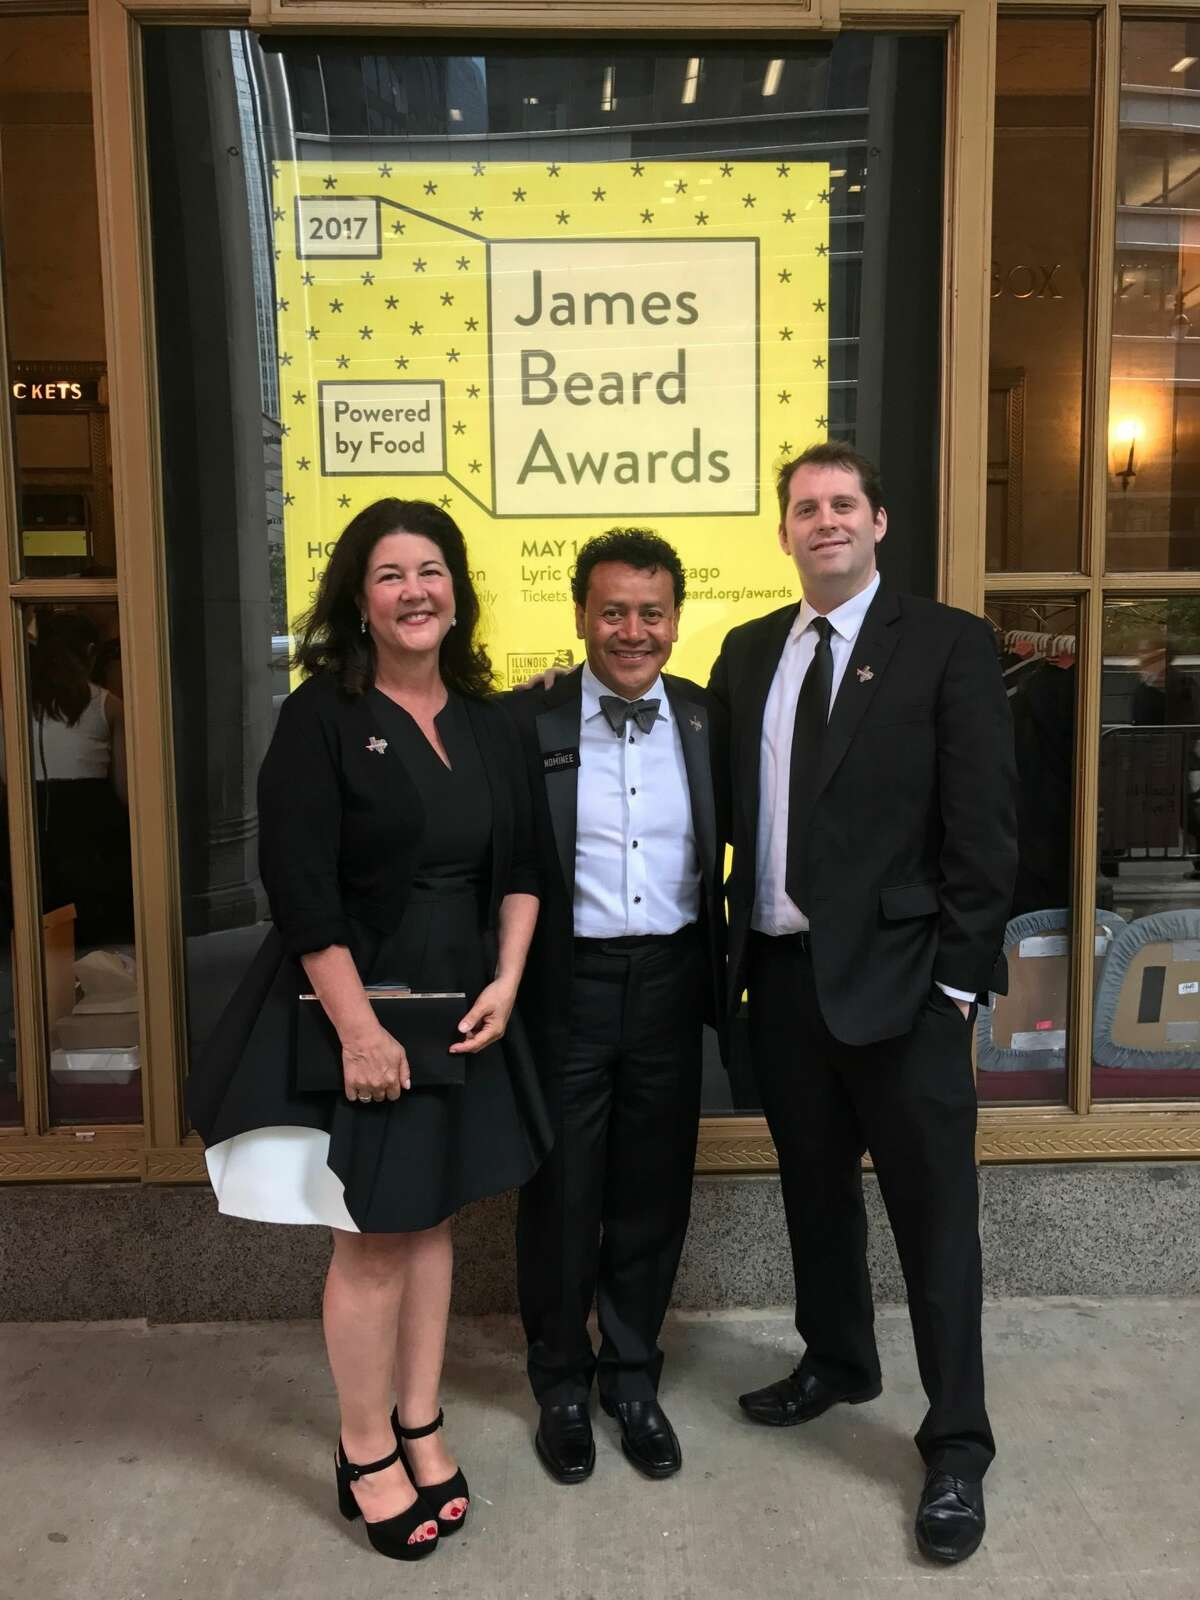 Tracy Vaught, Hugo Ortega and Sean Beck in Chicago before the 2017 James Beard Award ceremony.